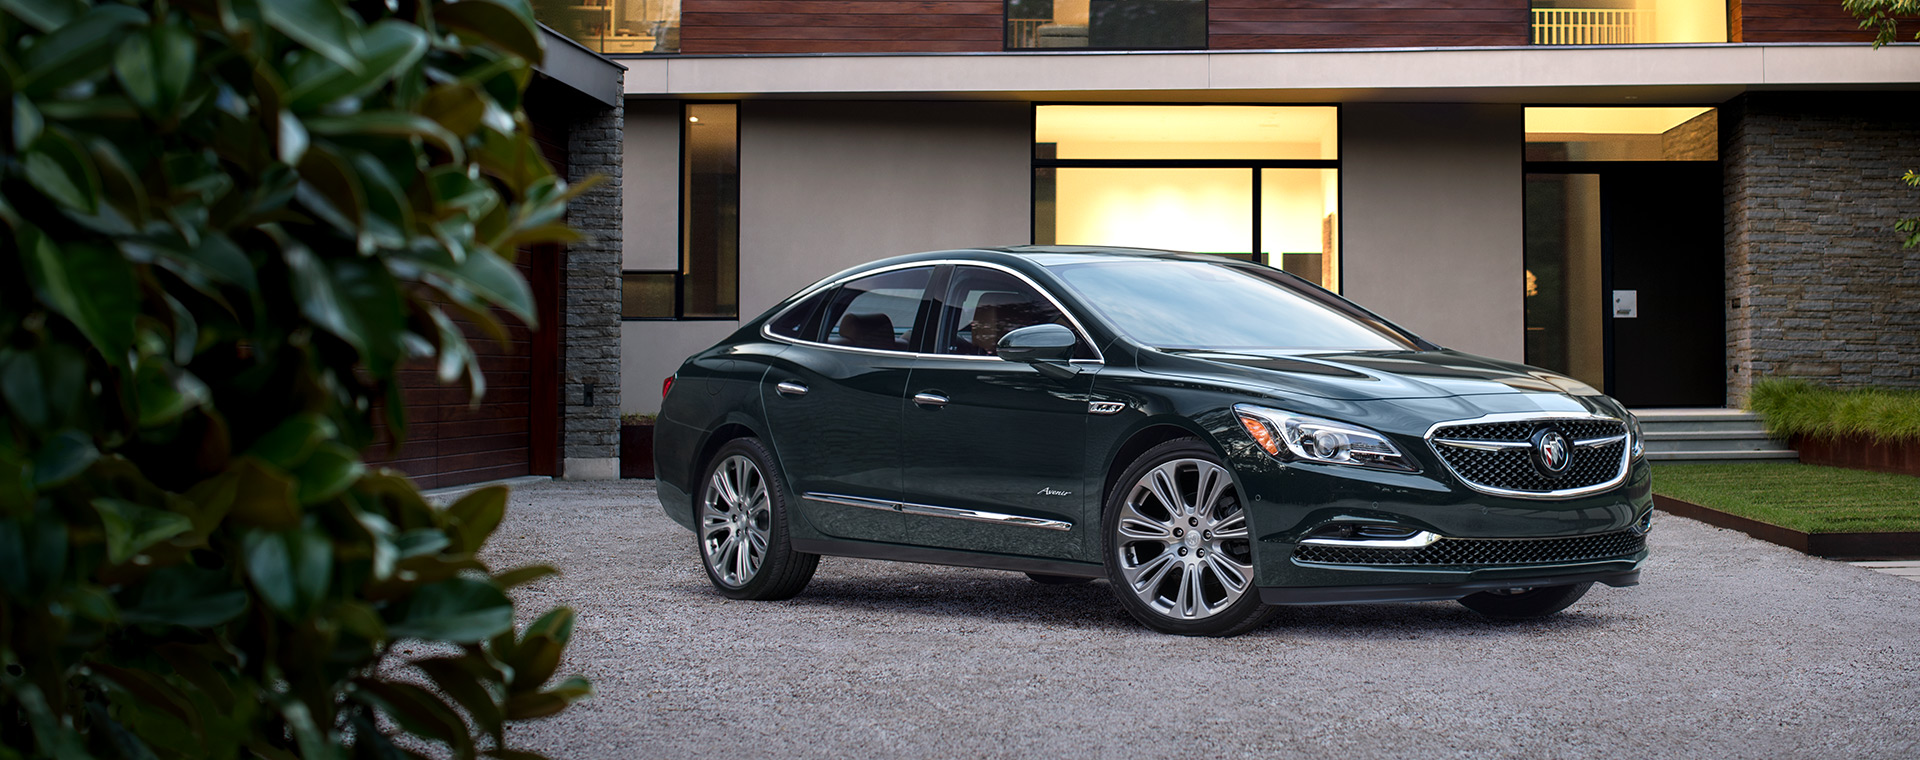 2018 buick lacrosse for sale in southern california socal buick gmc sciox Image collections